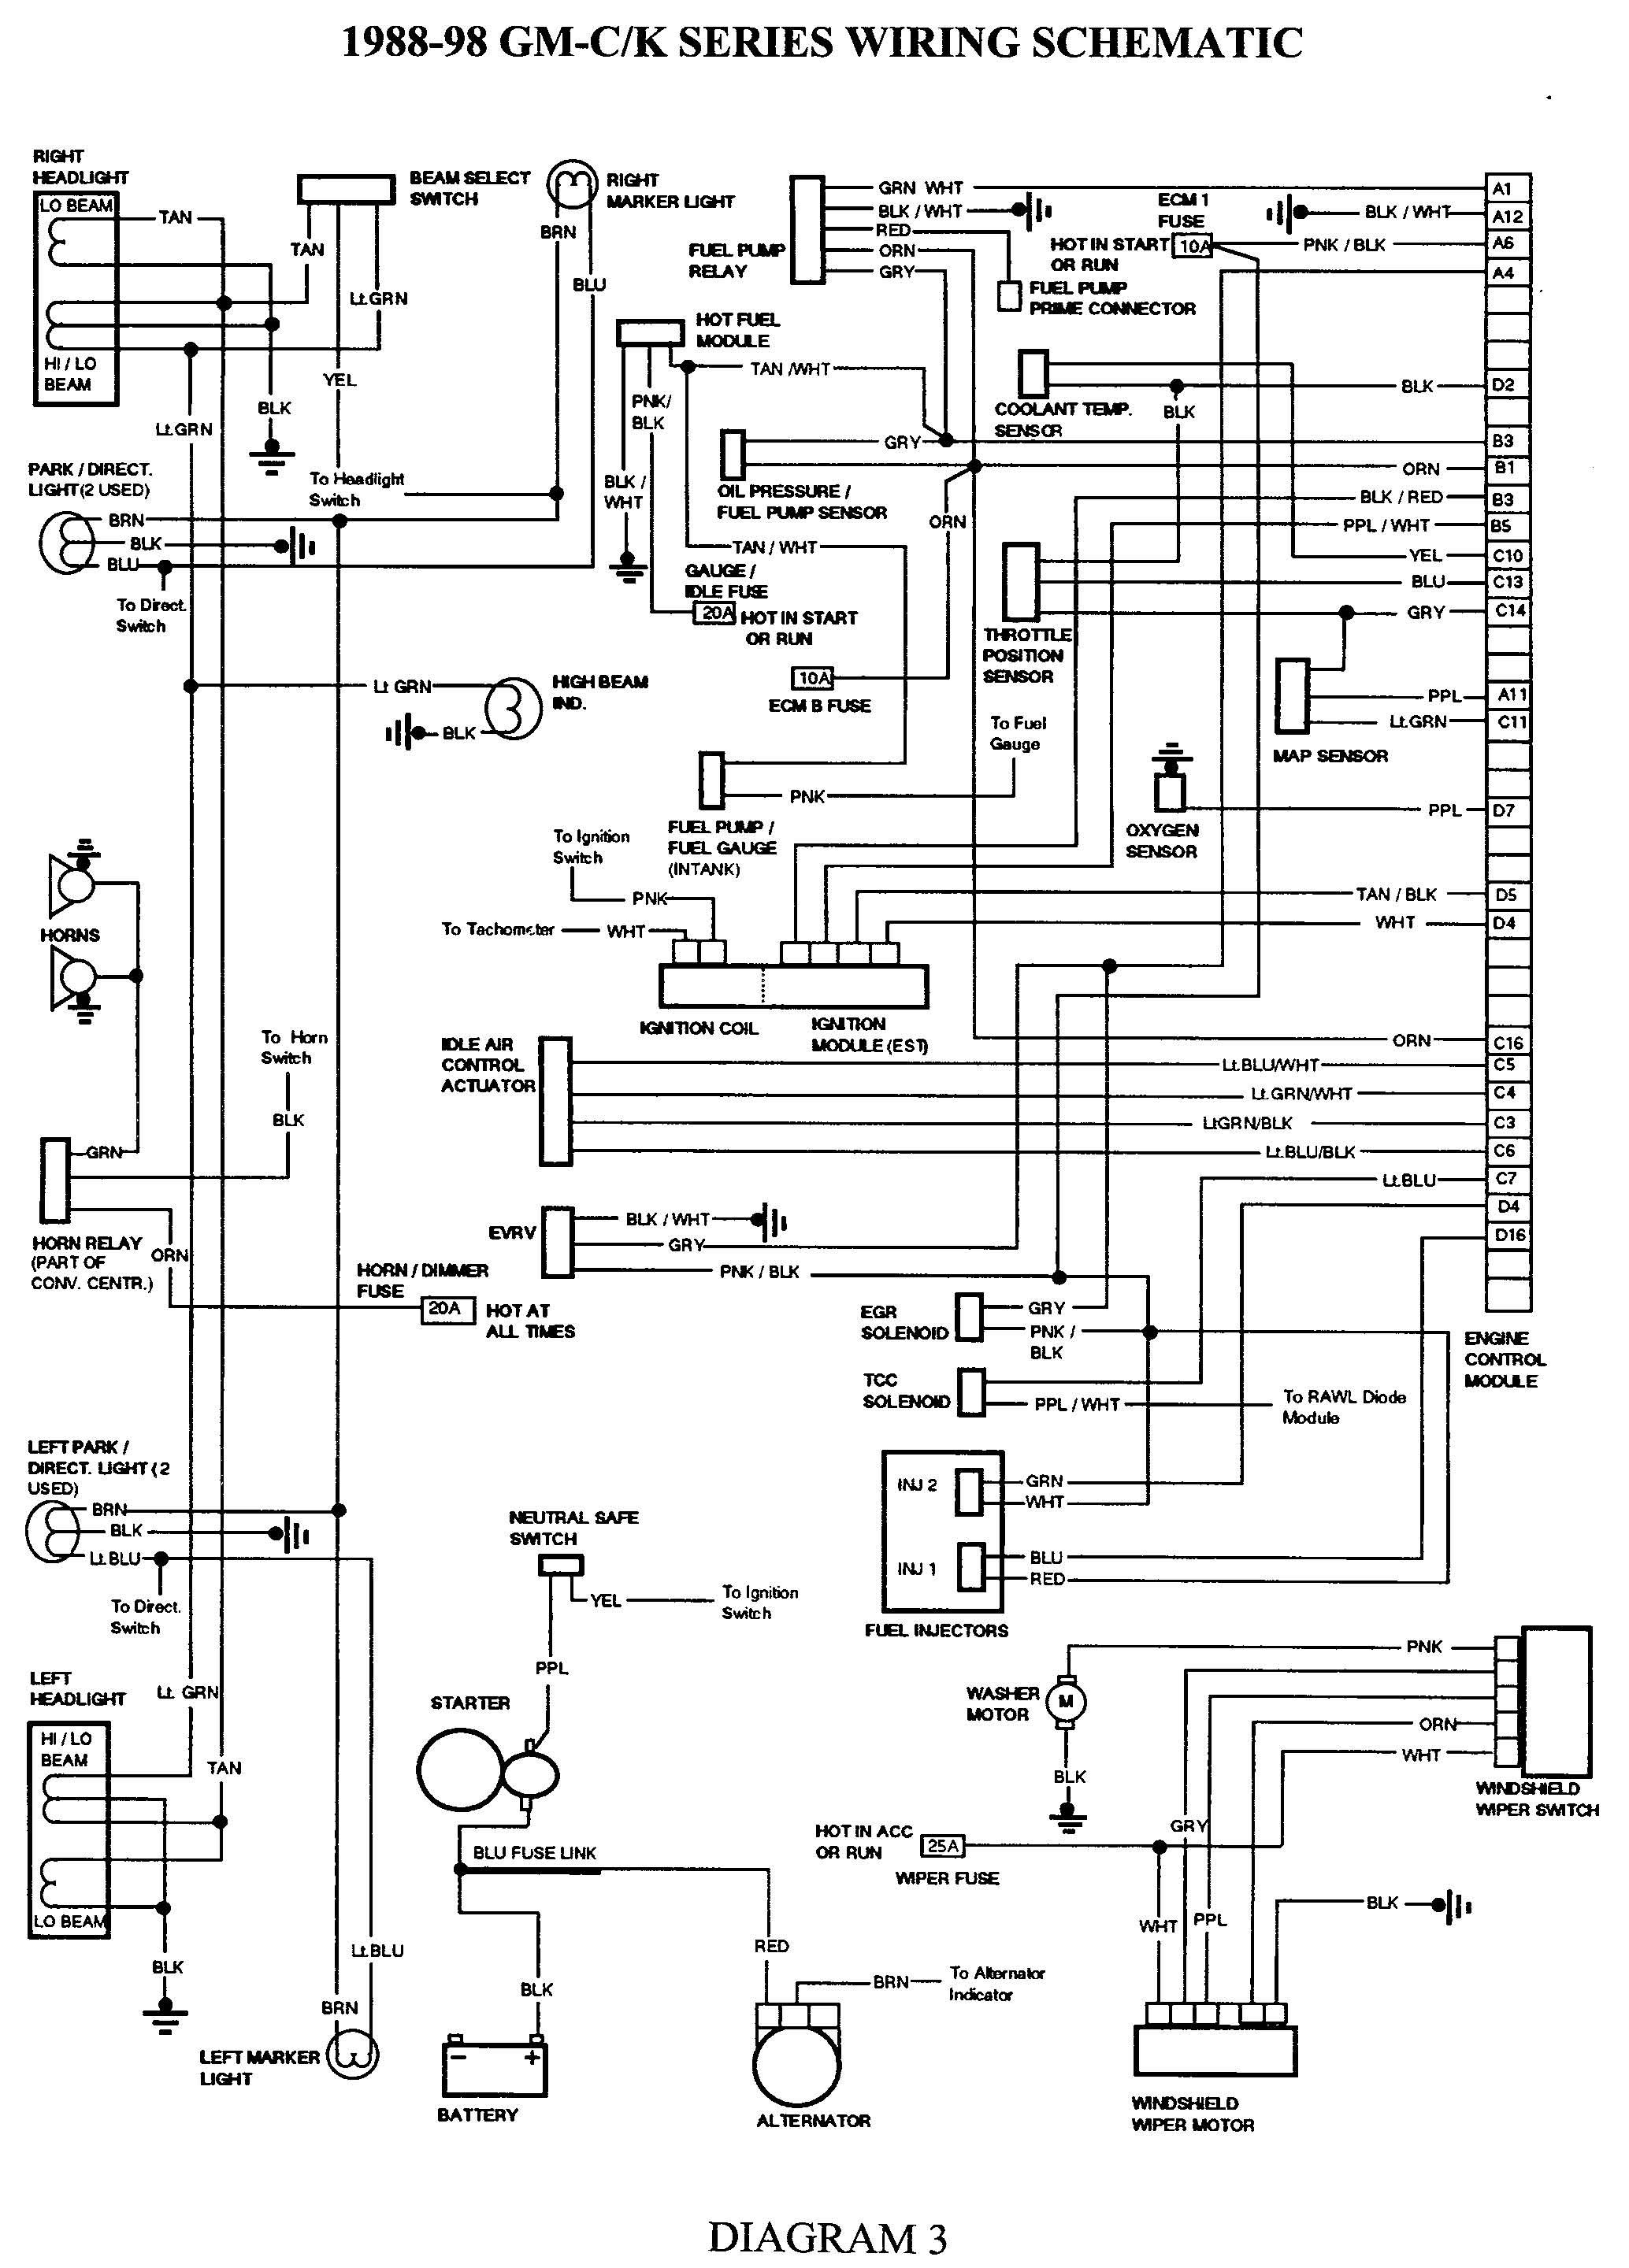 B F E Dbdc Dada Ef F D Ce D on 1979 Toyota Pickup Wiring Diagram